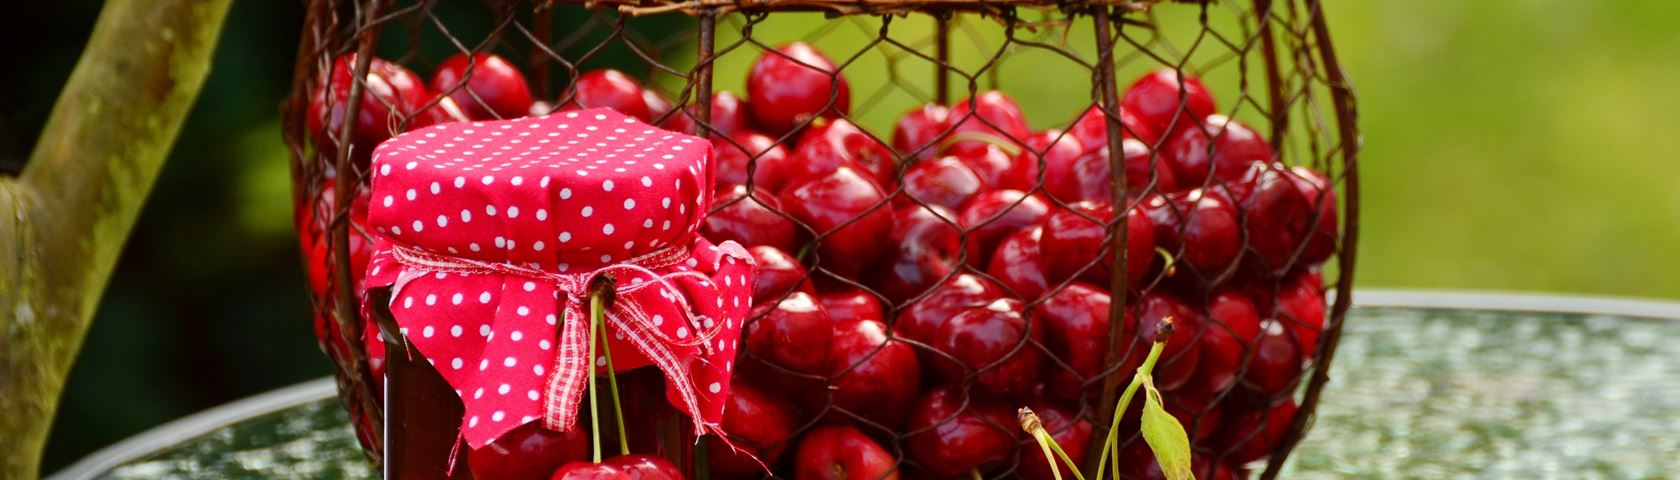 Basket of Cherries